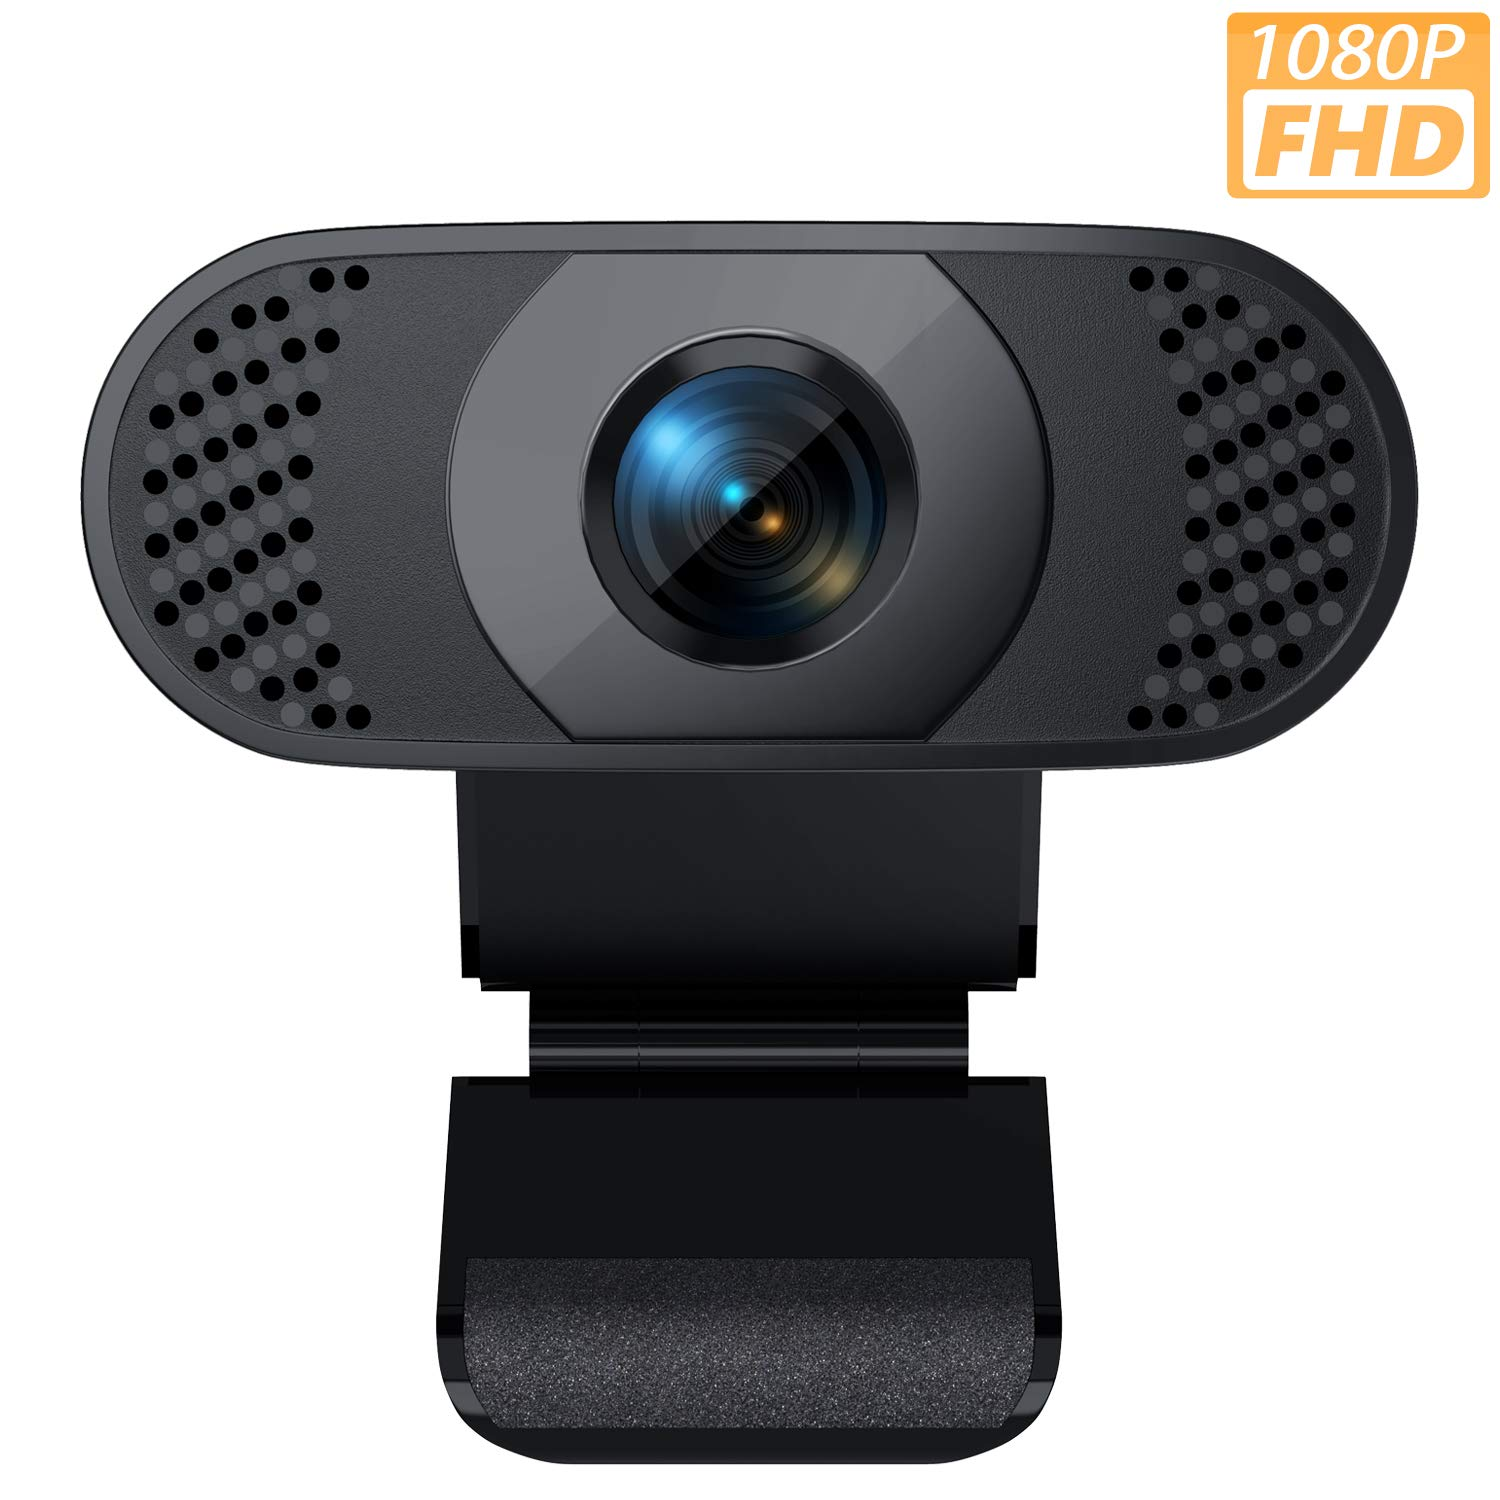 Webcam with Microphone 1080P HD Web Camera USB Computer Camera for Laptop Desktop PC Mac Video Calling Recording Streaming Online Teaching Business Conference Gaming